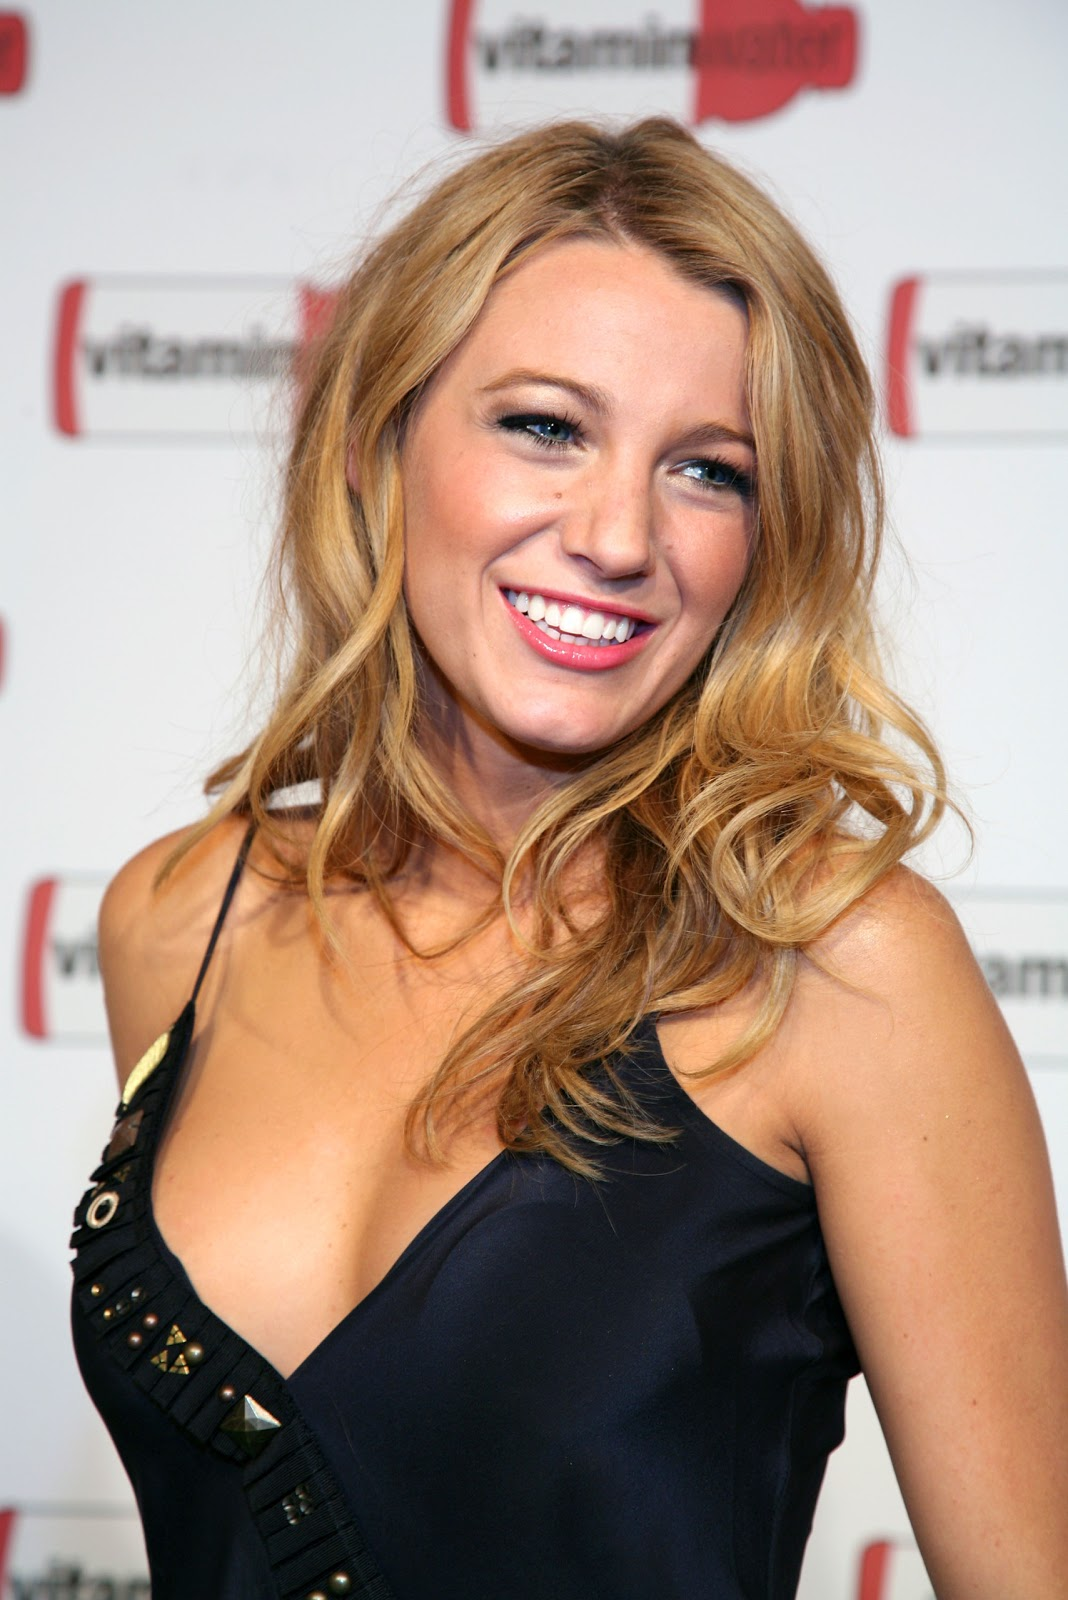 Blake Lively sexy pictures